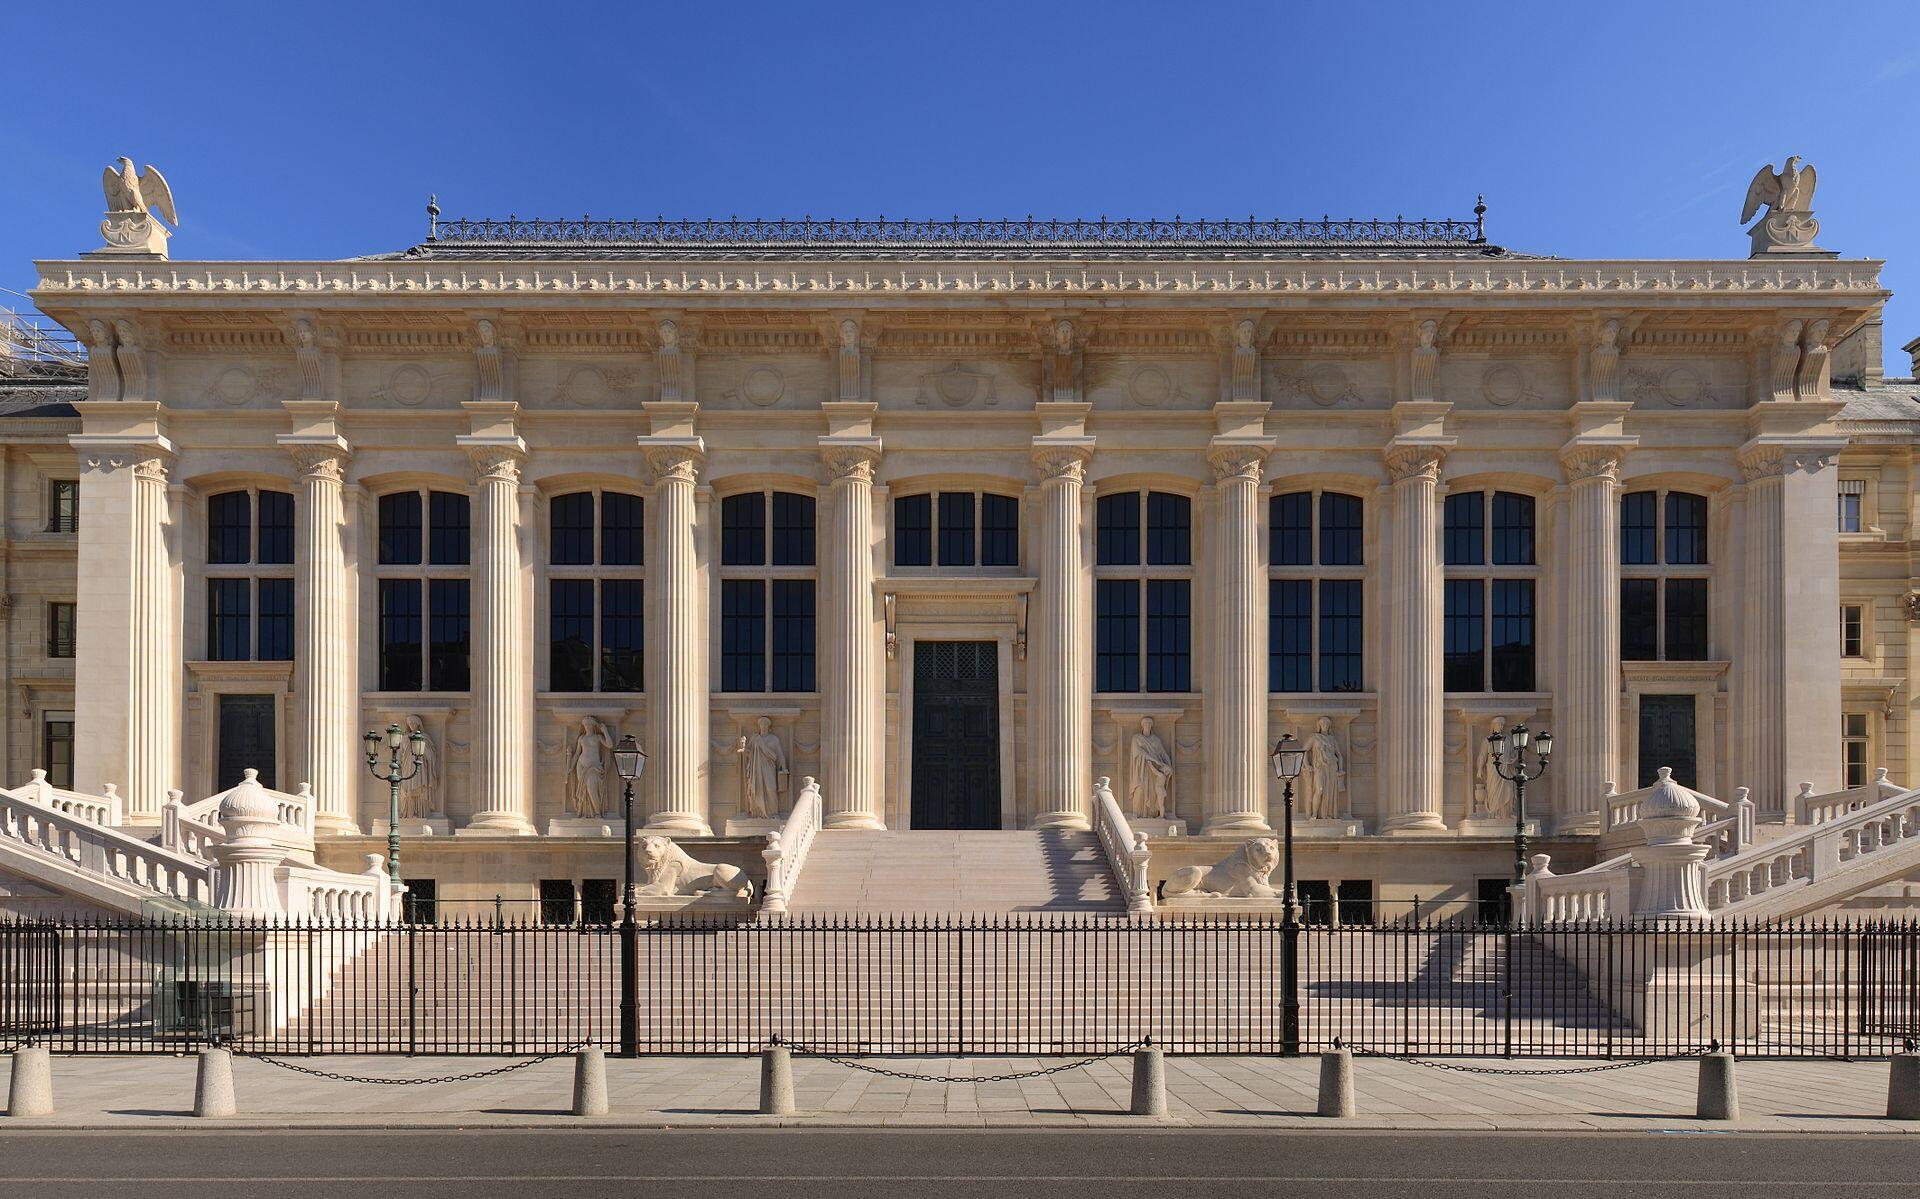 The Paris court of appeals. The court ruled that the employer of a man who died of a heart attack while having sex on a business trip is liable for costs related to his death.